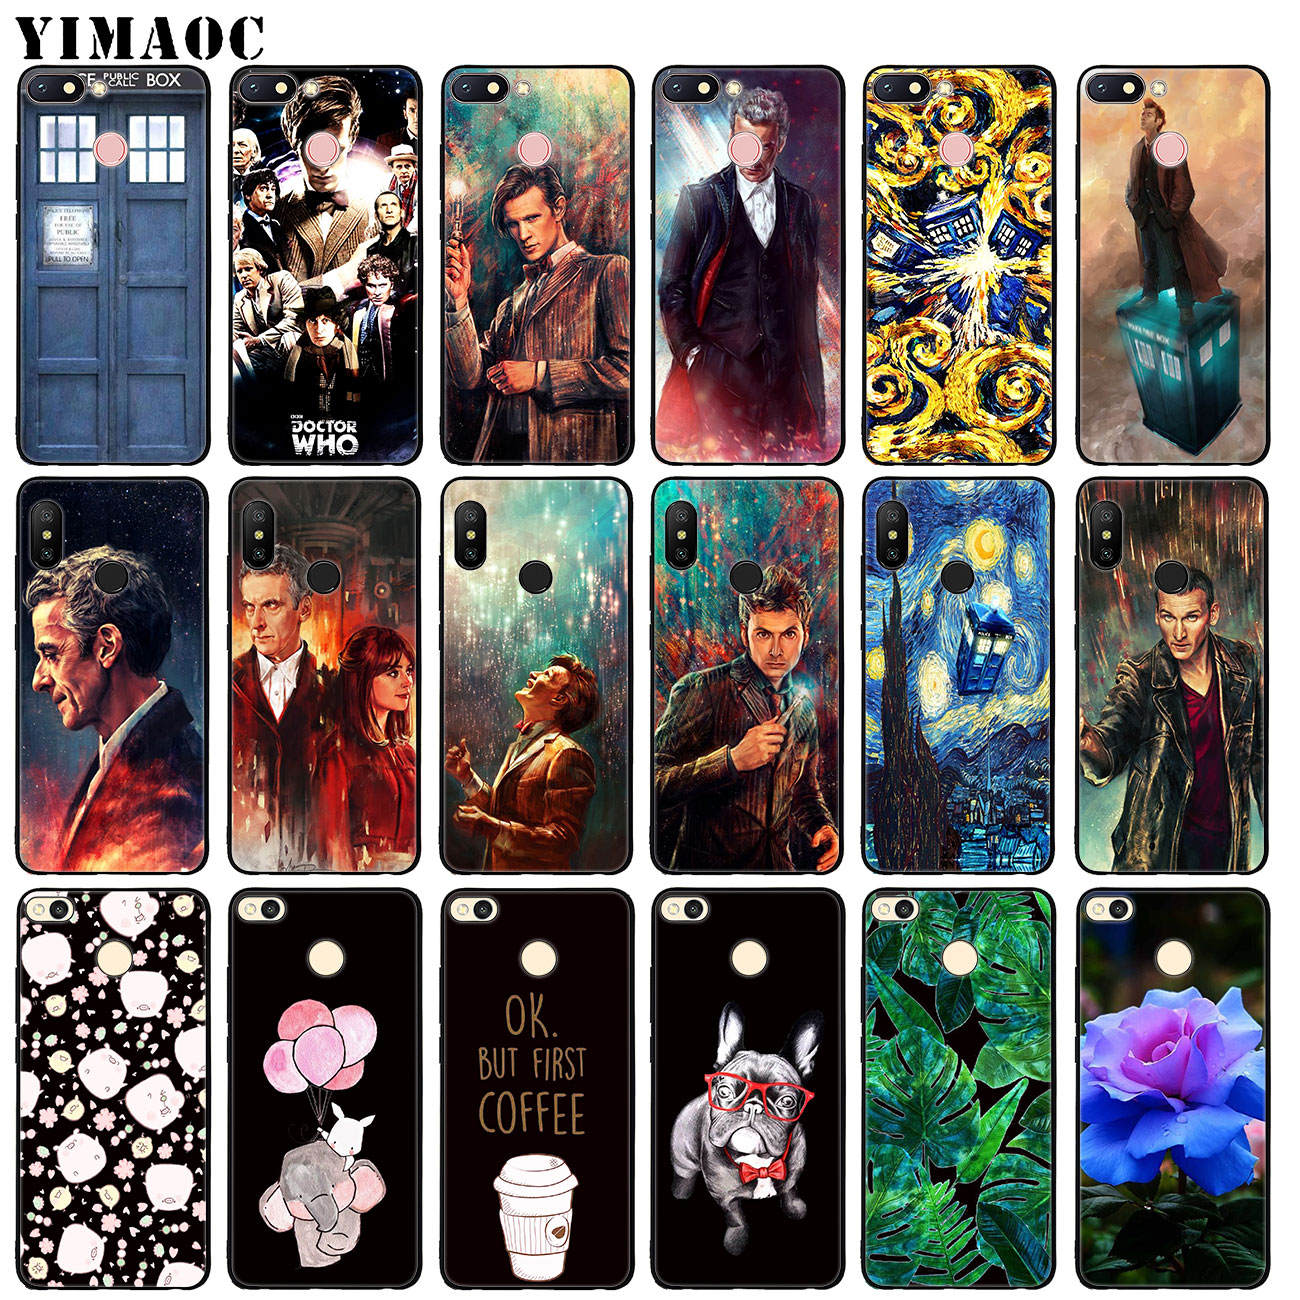 Audacious Yimaoc Tardis Box Doctor Who Soft Silicone Case For Xiaomi Redmi 6a 5a Note 7 4 4x 5 Plus 6 Pro Mi Plus Black Flower Tpu Cover Skilful Manufacture Cellphones & Telecommunications Phone Bags & Cases